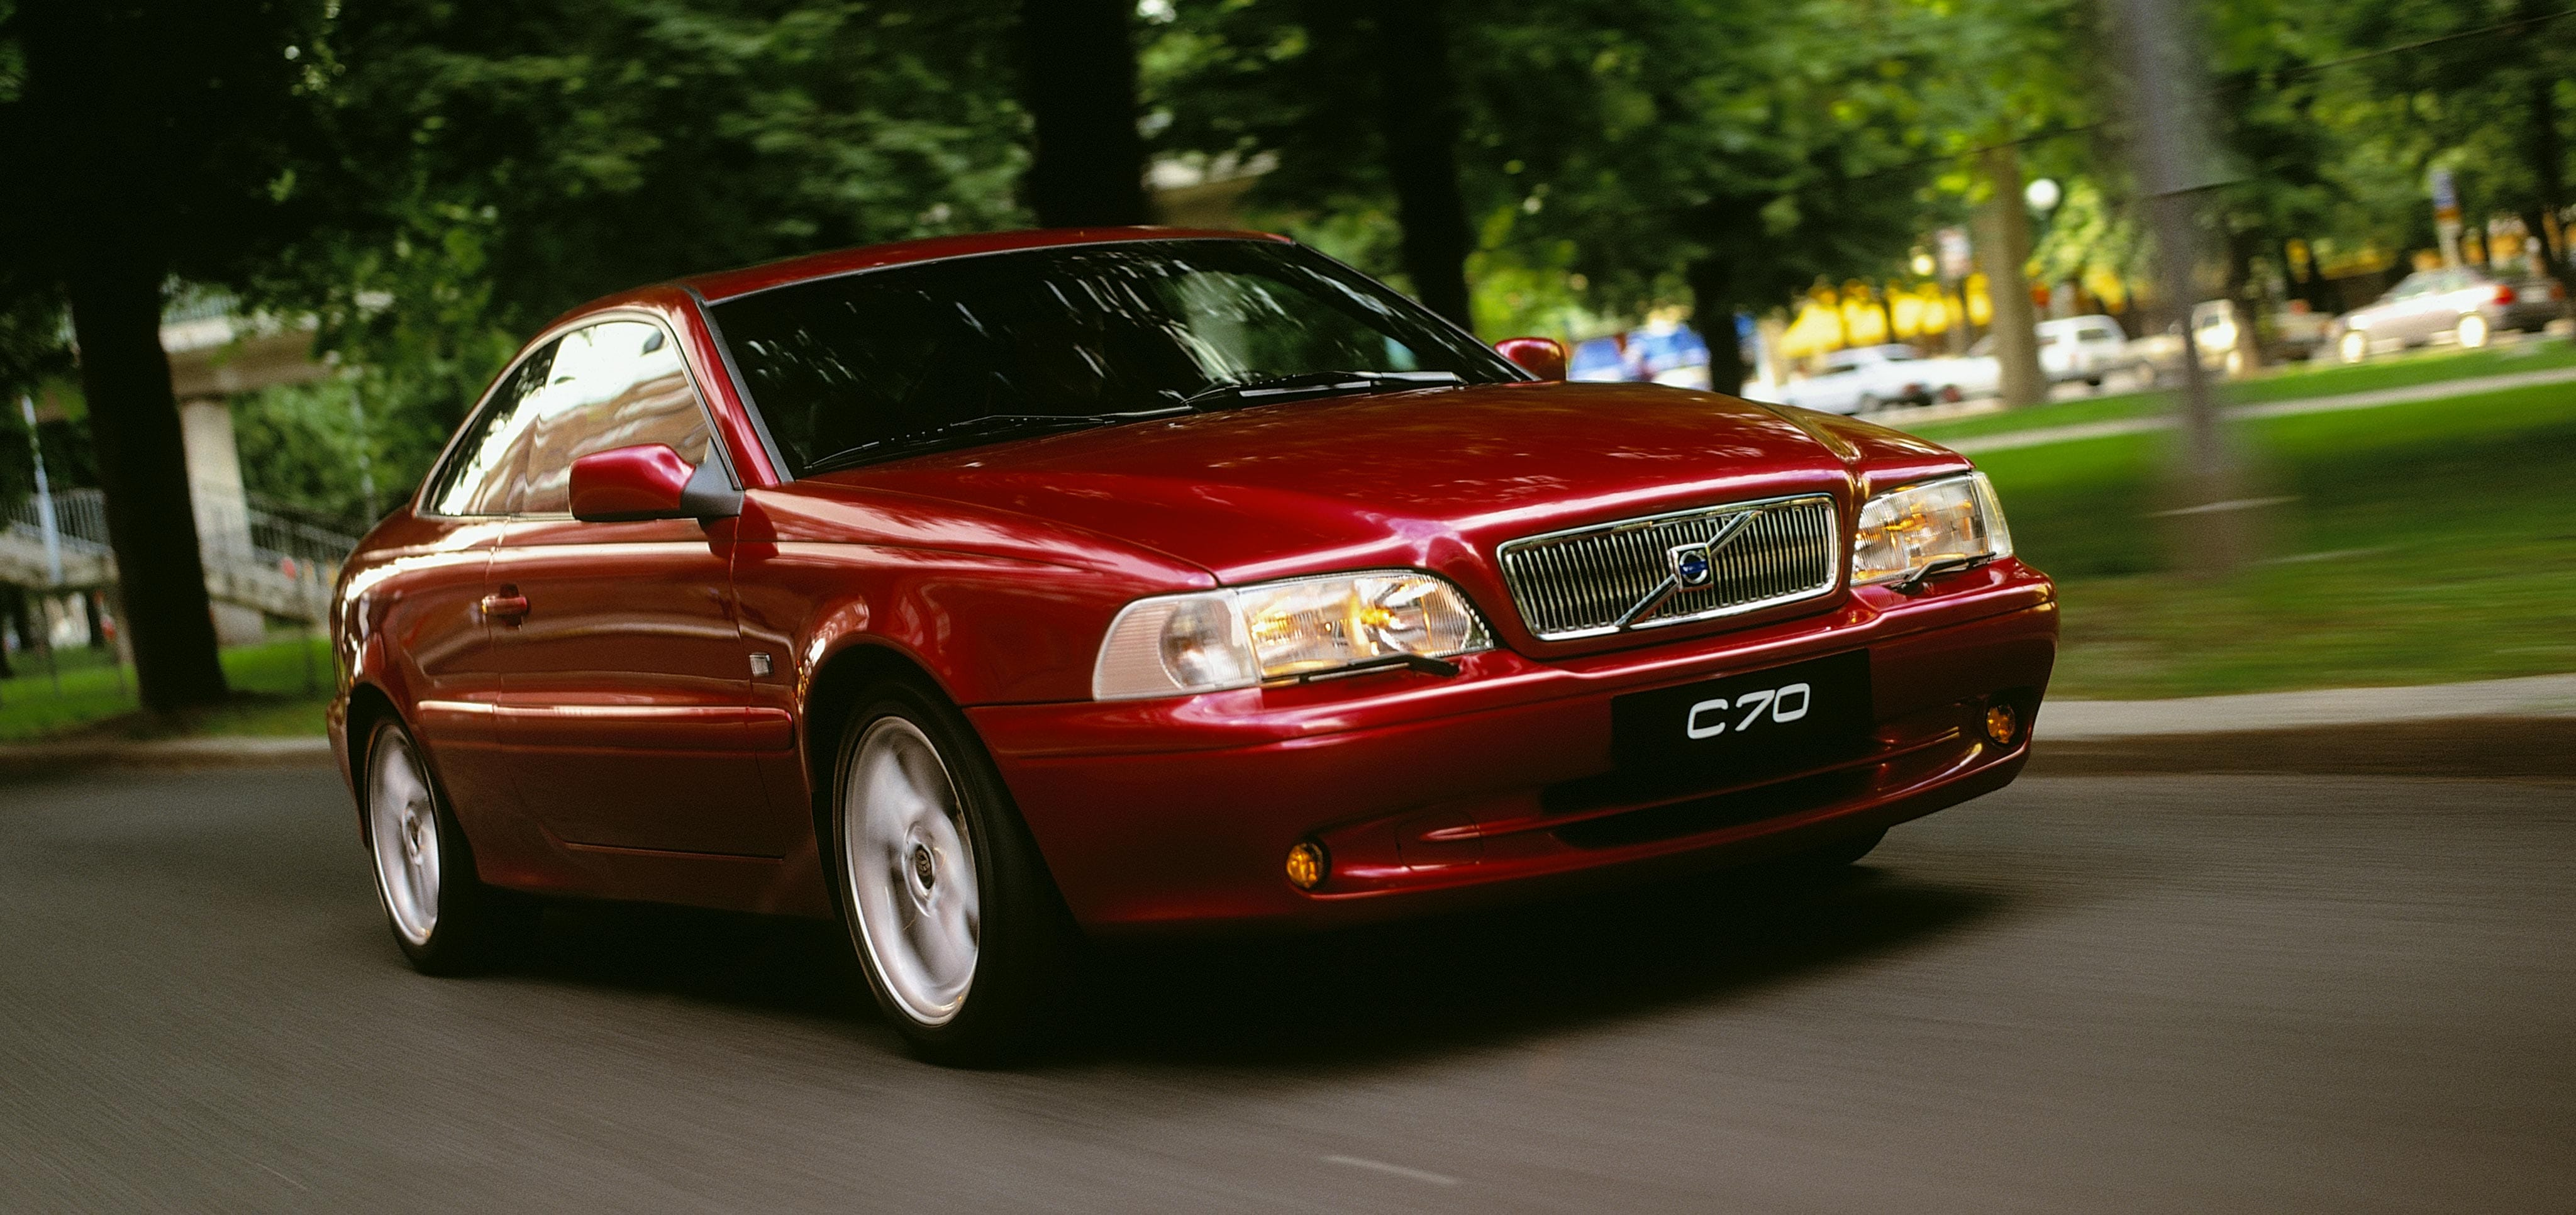 https://assets.volvocars.com/uk/~/media/shared-assets/images/galleries/inside/our-company/heritage/heritage-models/61_volvo_c70_coupe_large.jpg